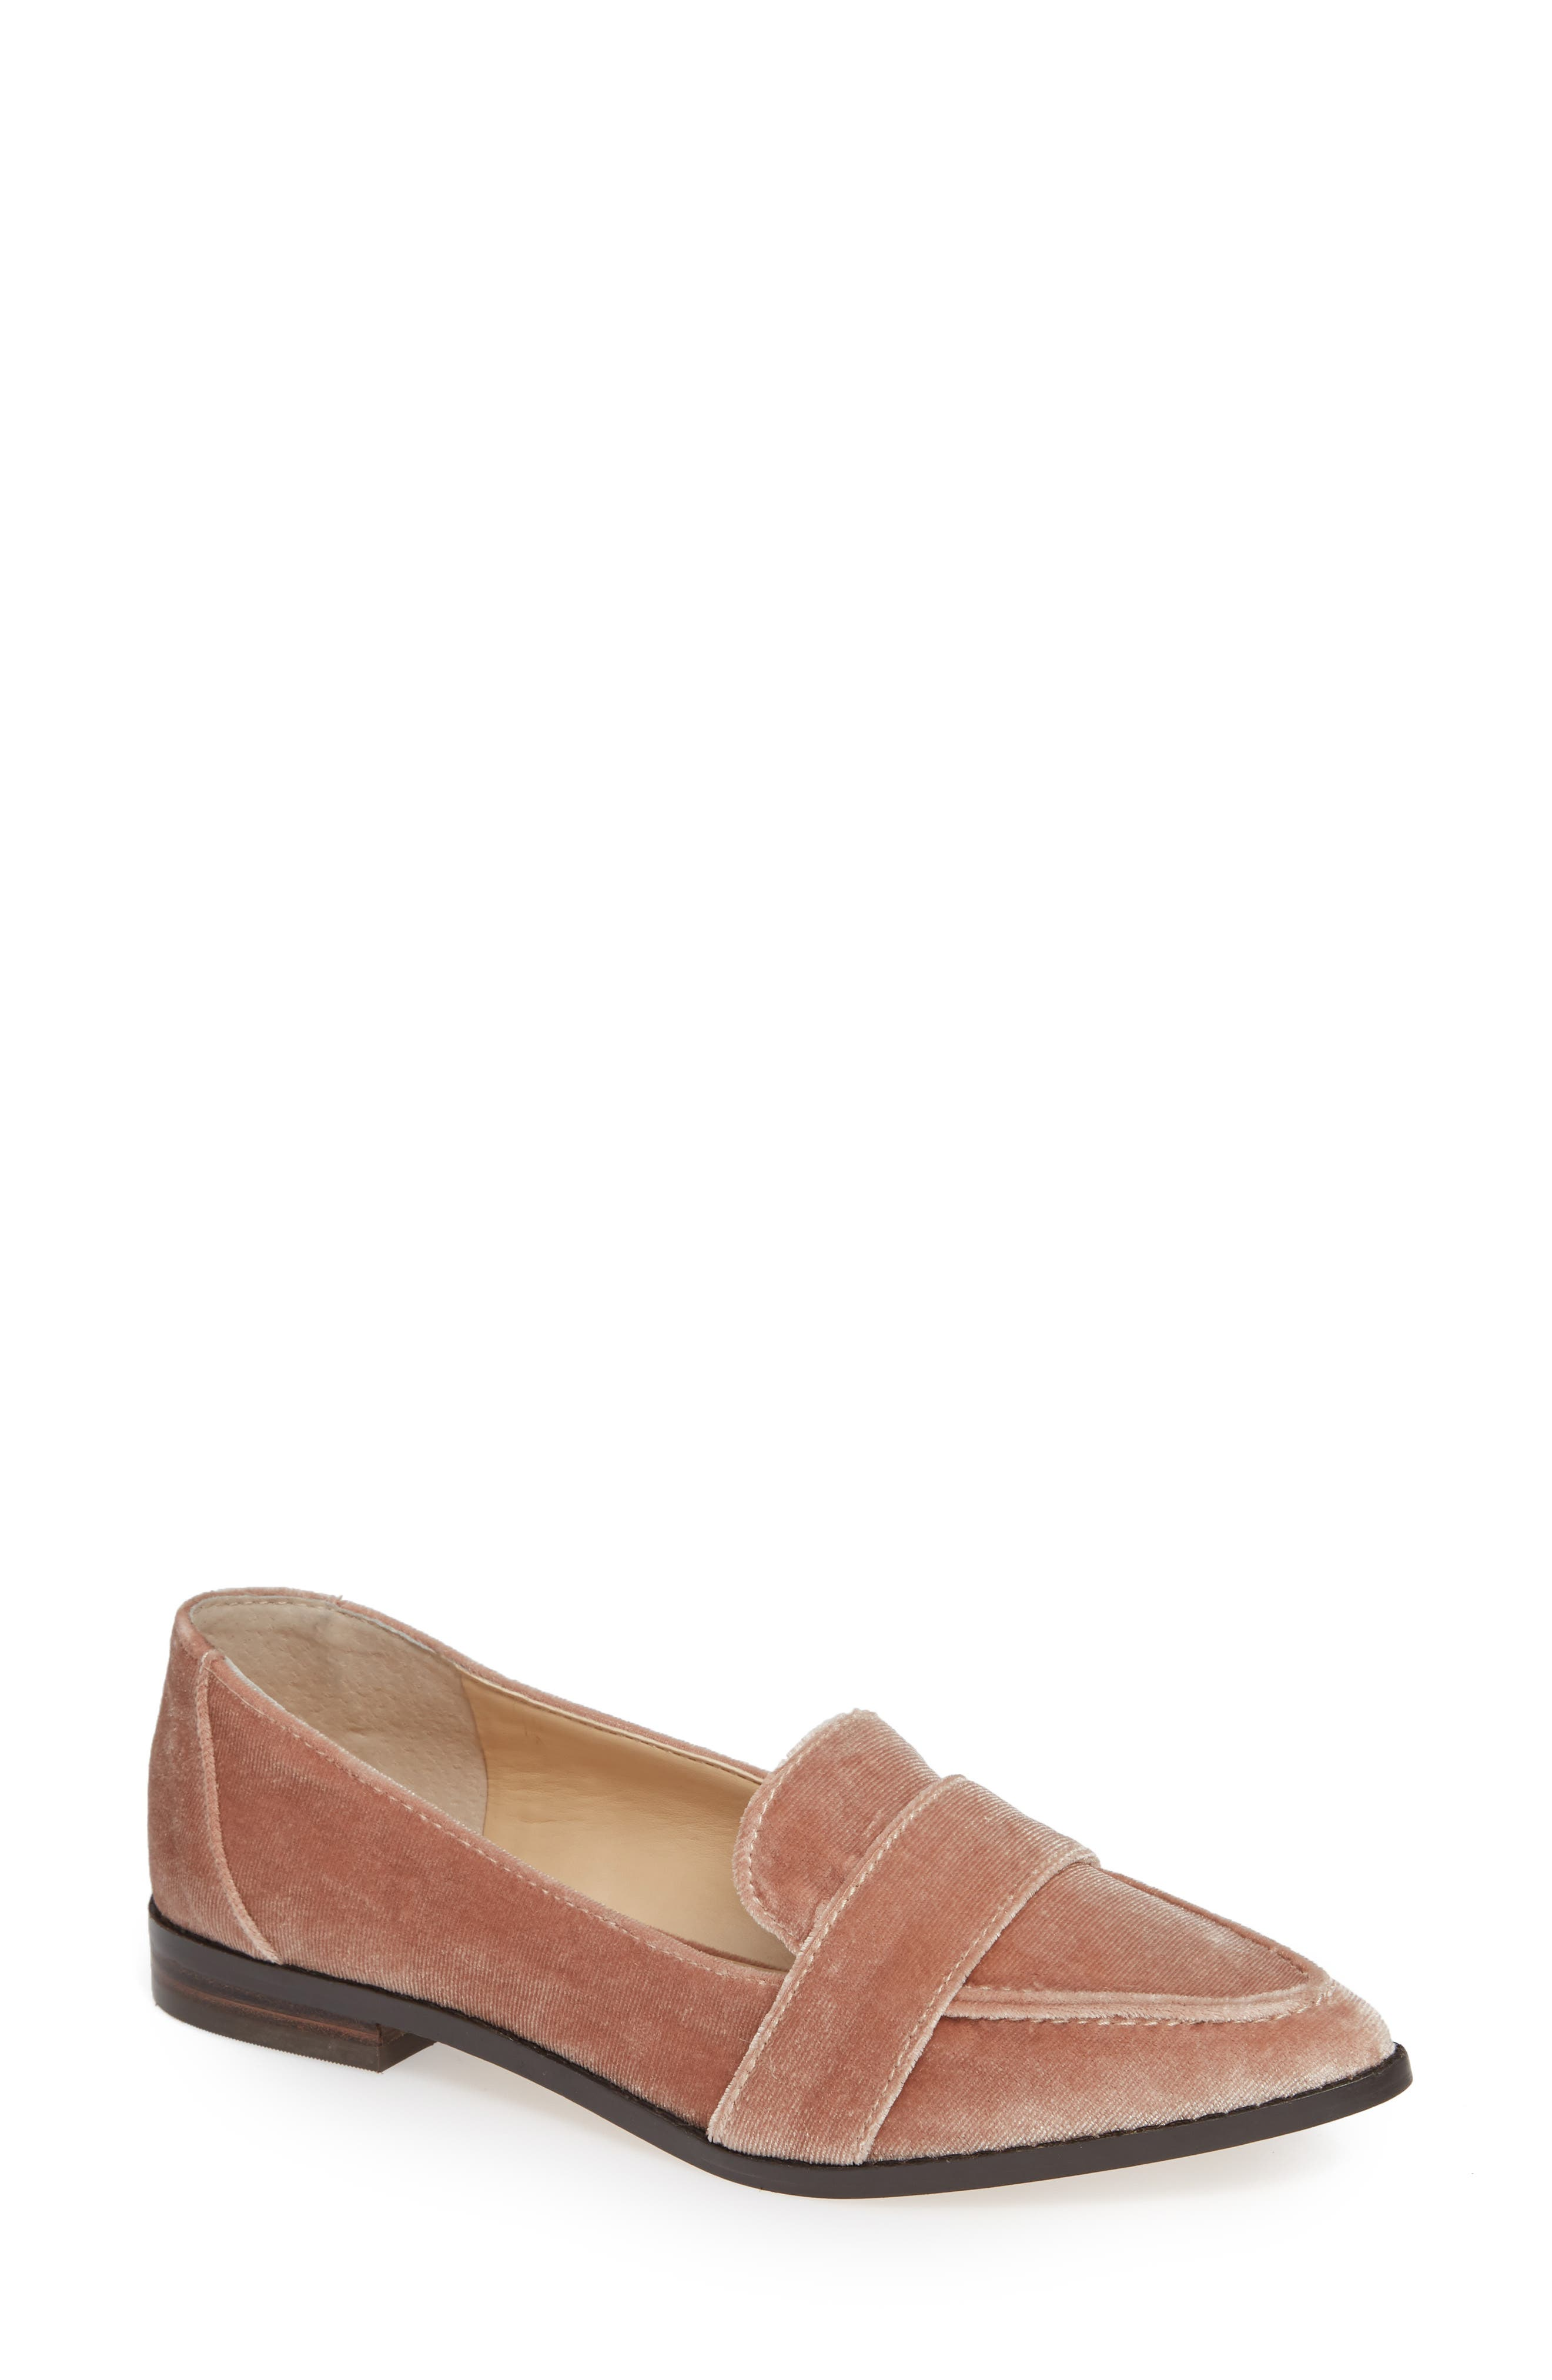 Edie Pointy Toe Loafer,                             Main thumbnail 1, color,                             Moonlight Velvet